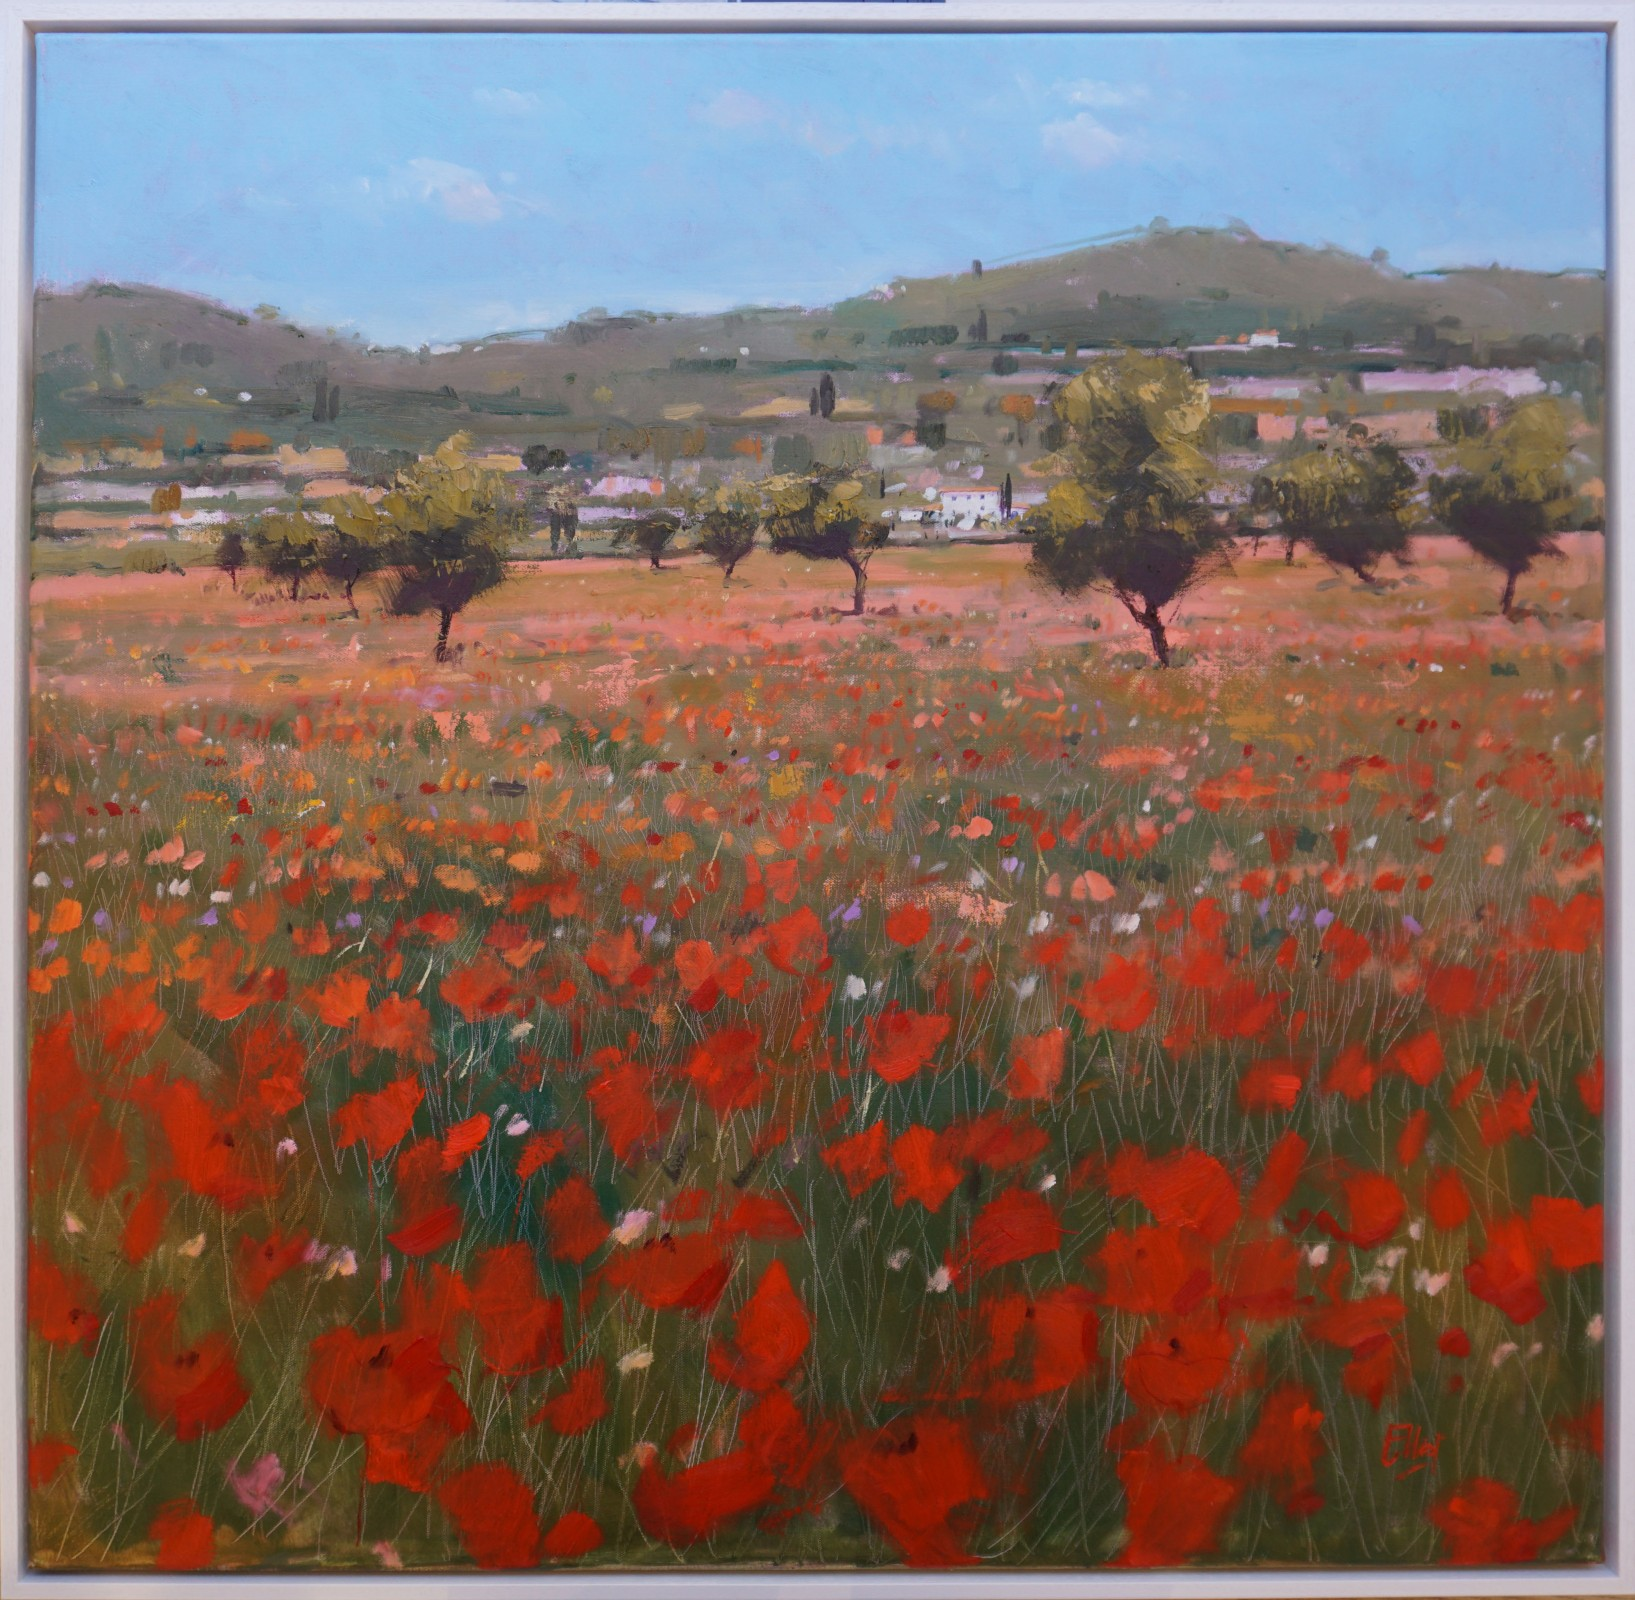 Wild Meadow in Bloom, Mallorca by  Ian Elliot